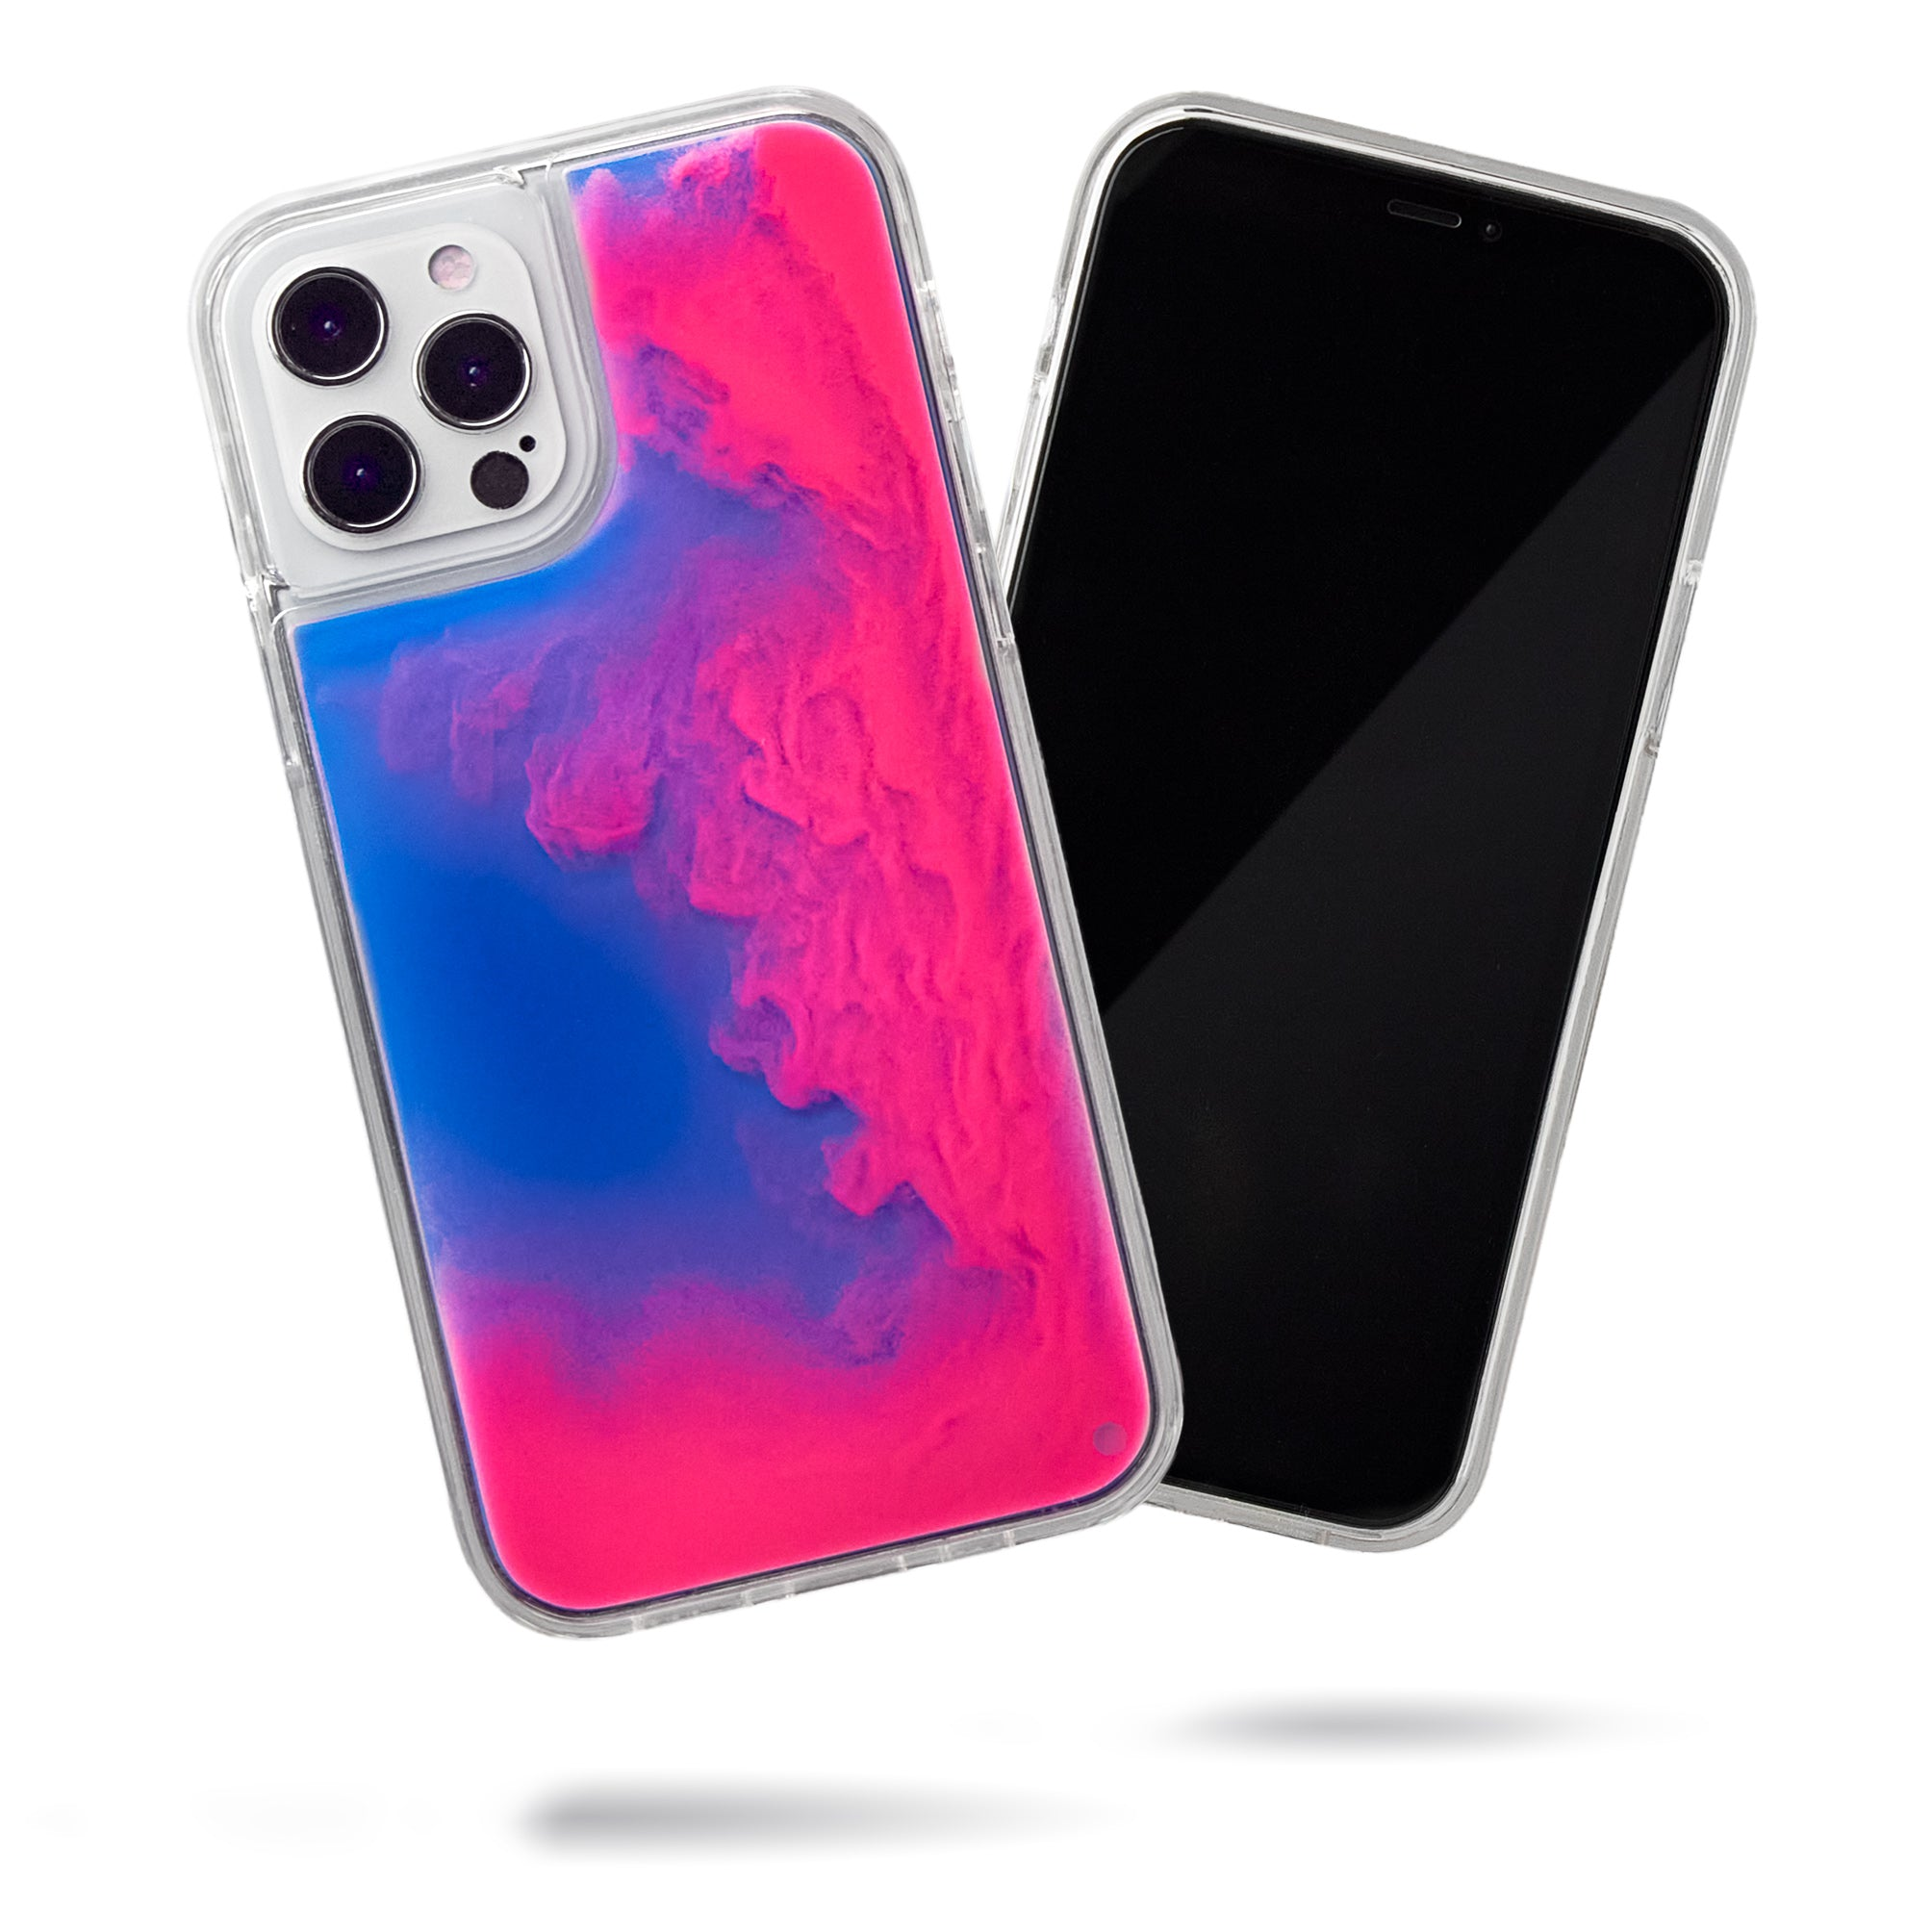 Neon Sand iPhone 12 Pro Max Case - Blueberry and Pink Glow